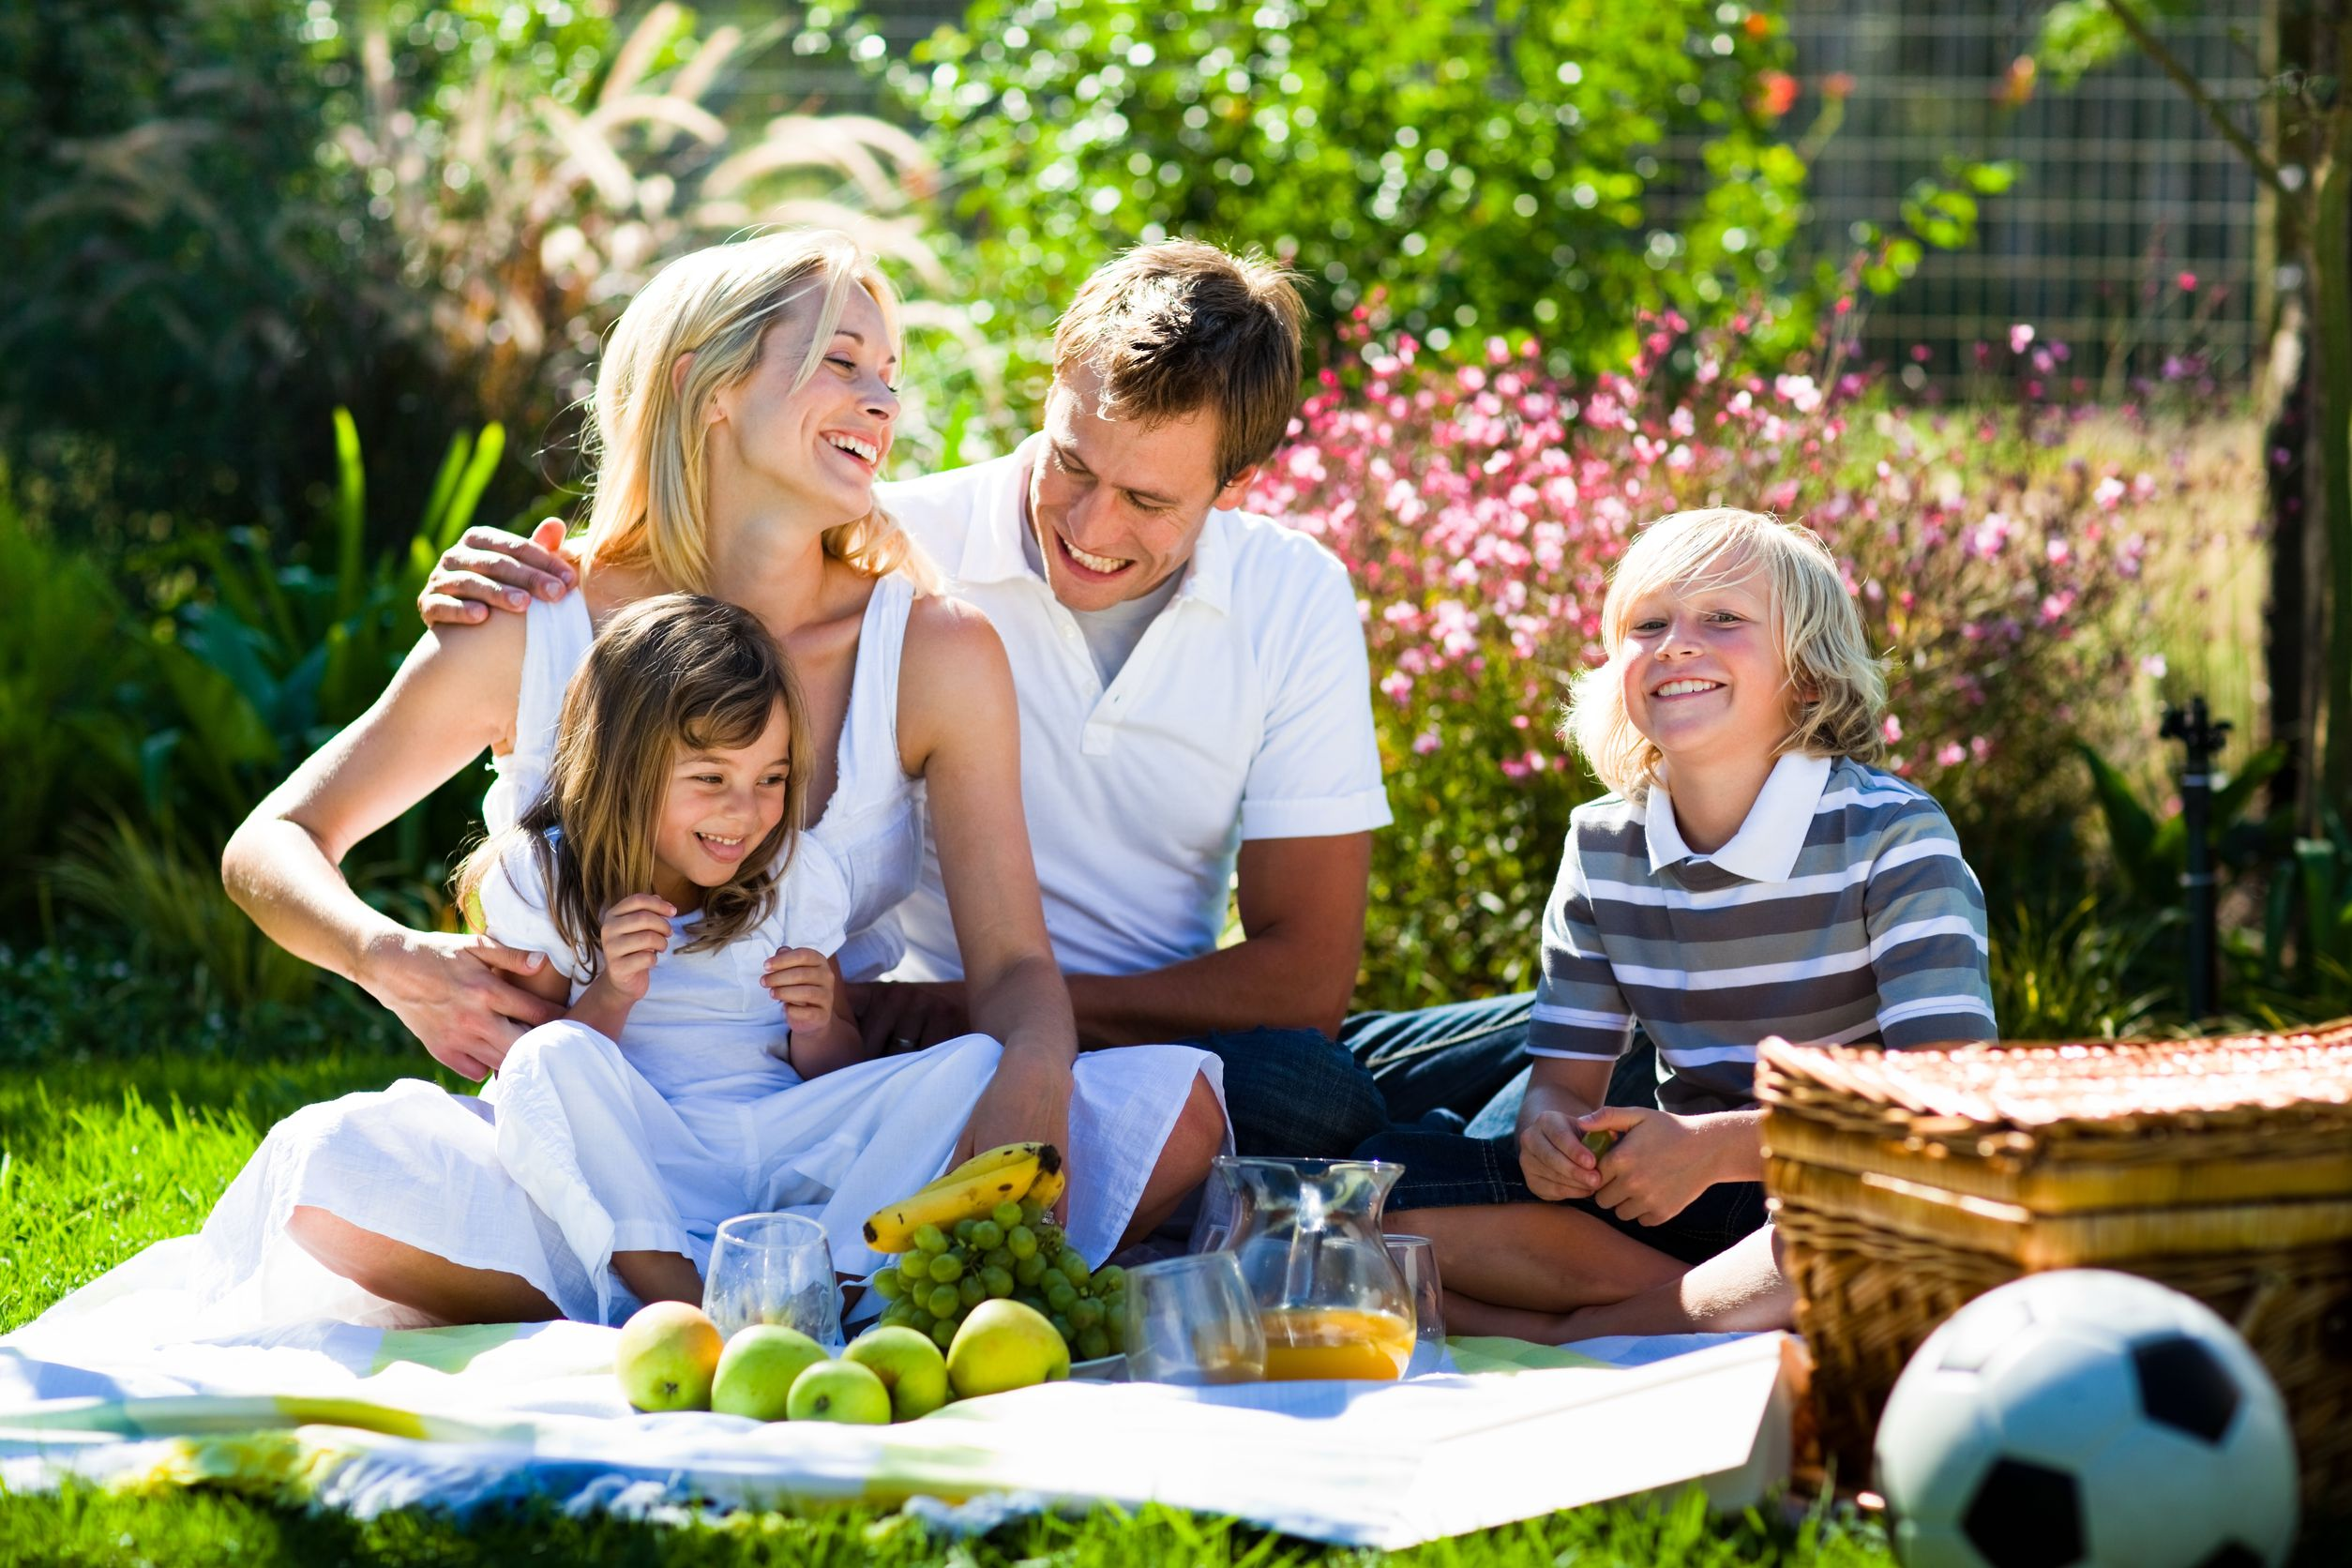 10248921_l-Happy-family-playing-together-in-a-picnic-